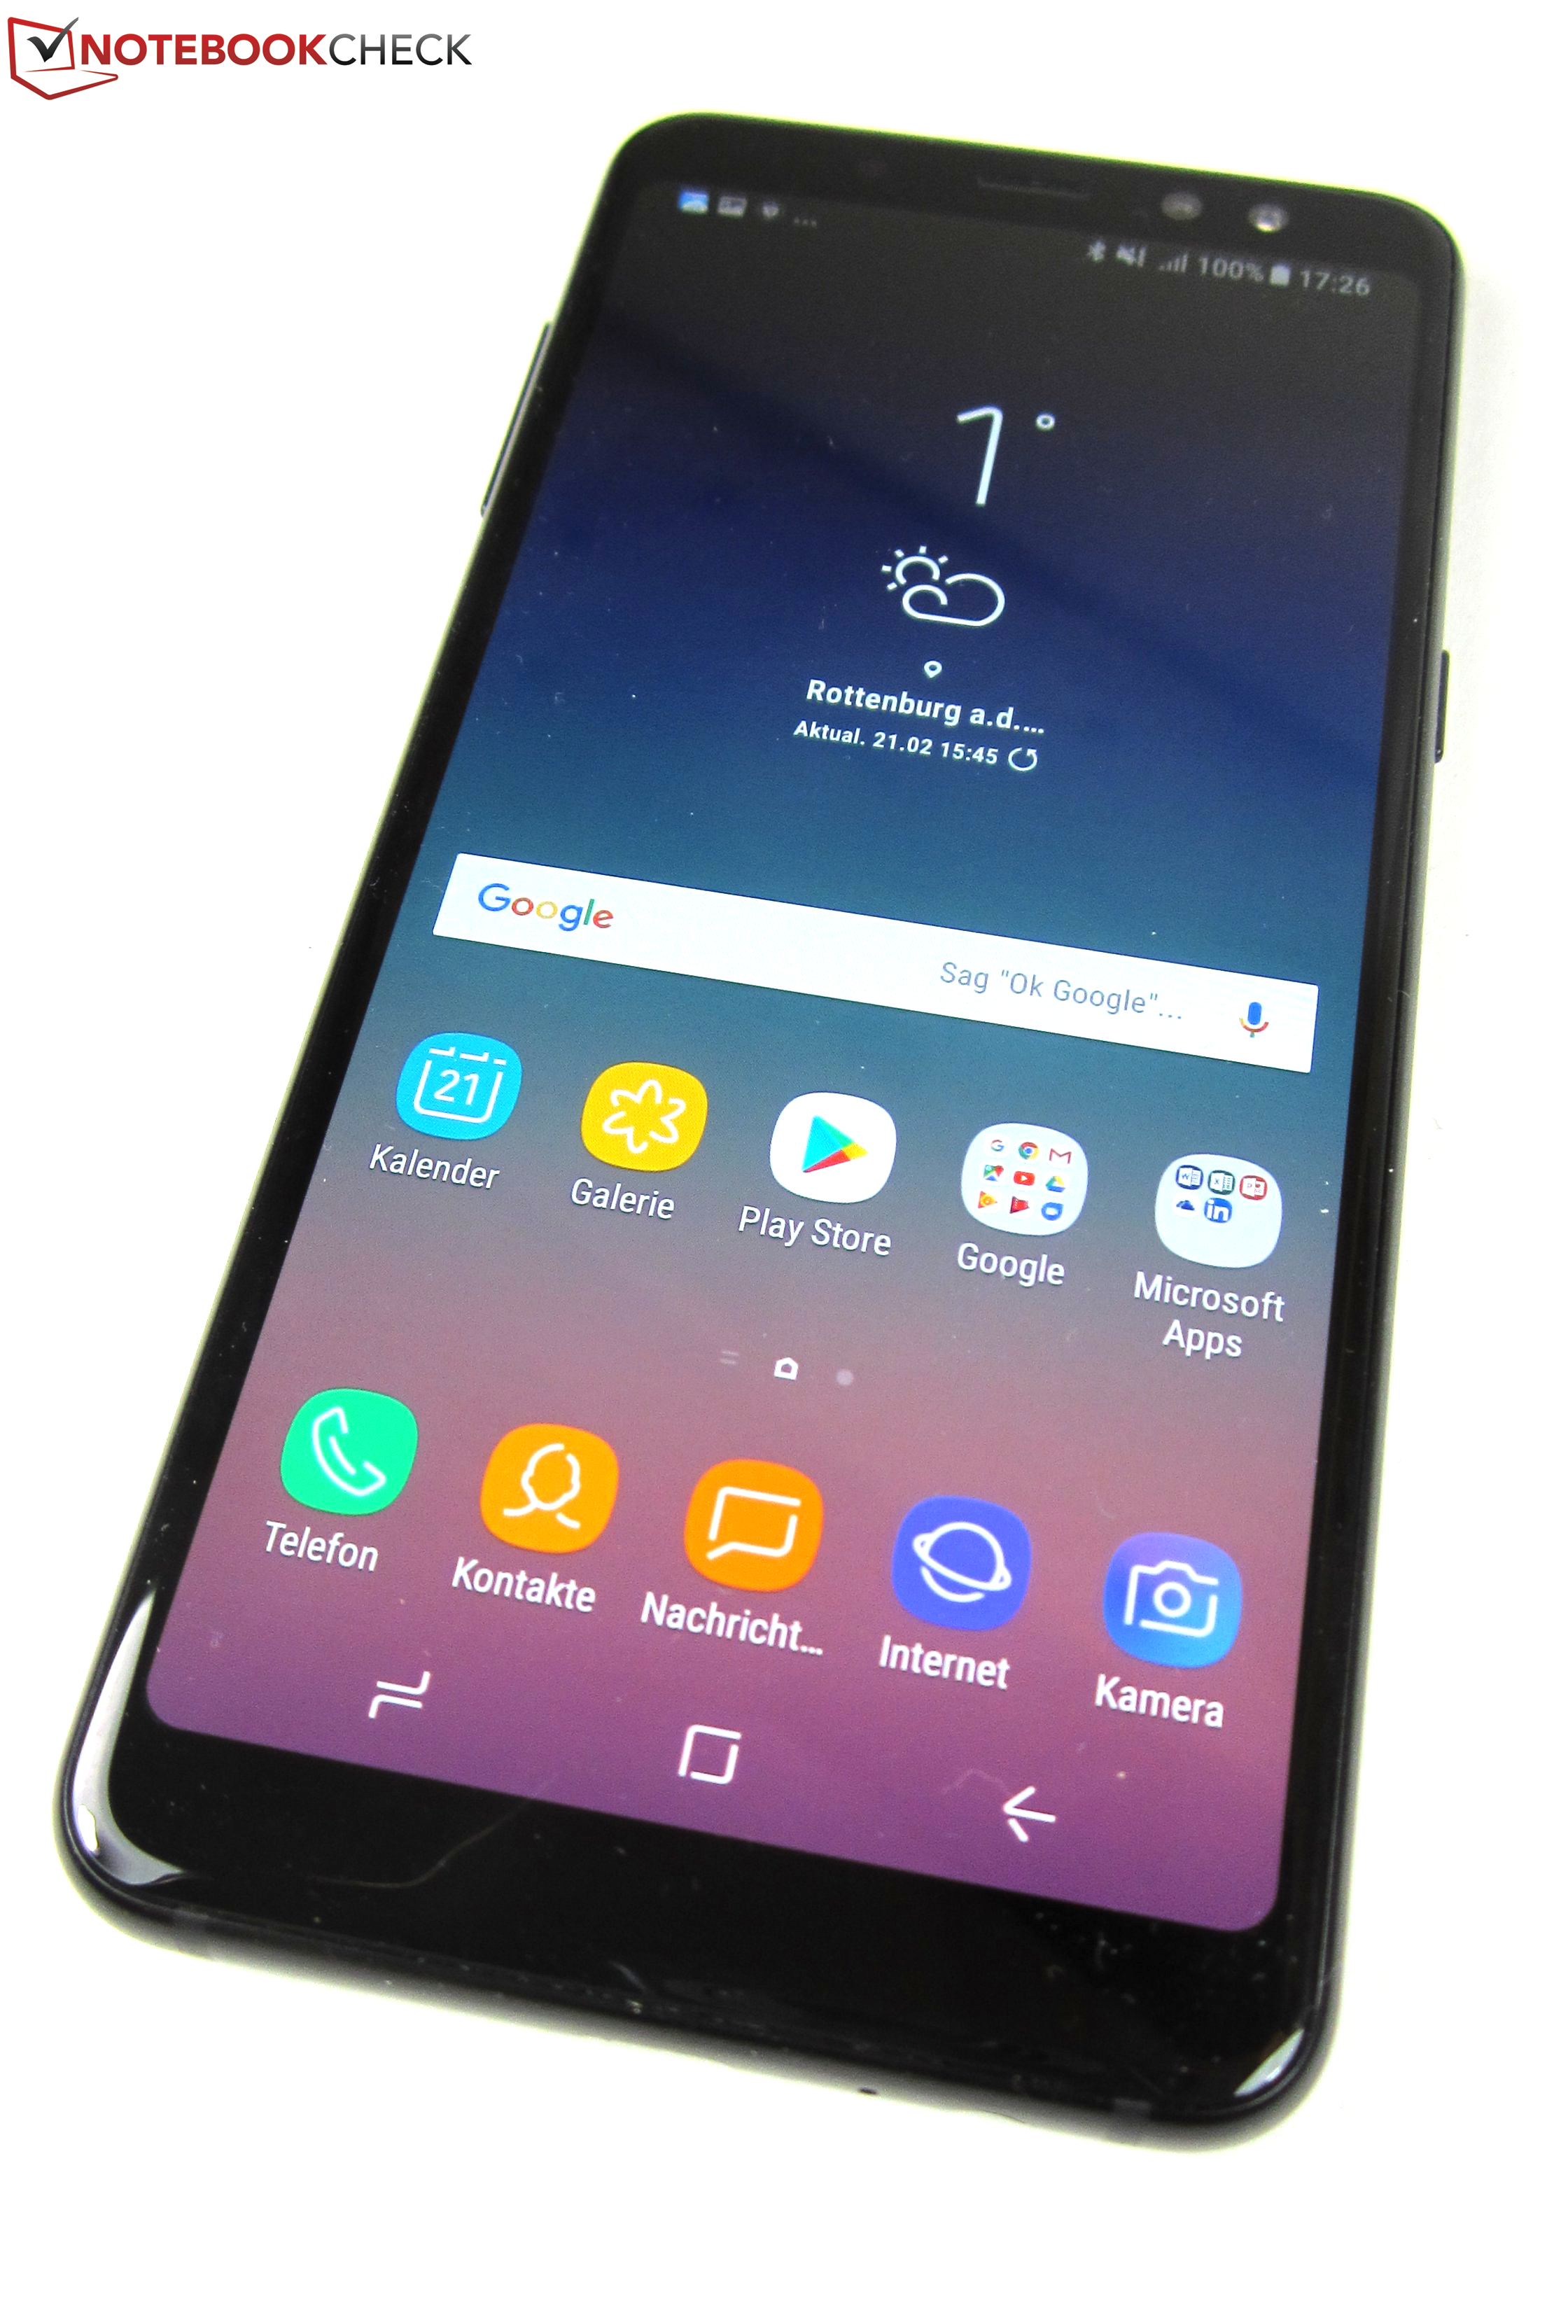 Samsung Galaxy A8 2018 Smartphone Review